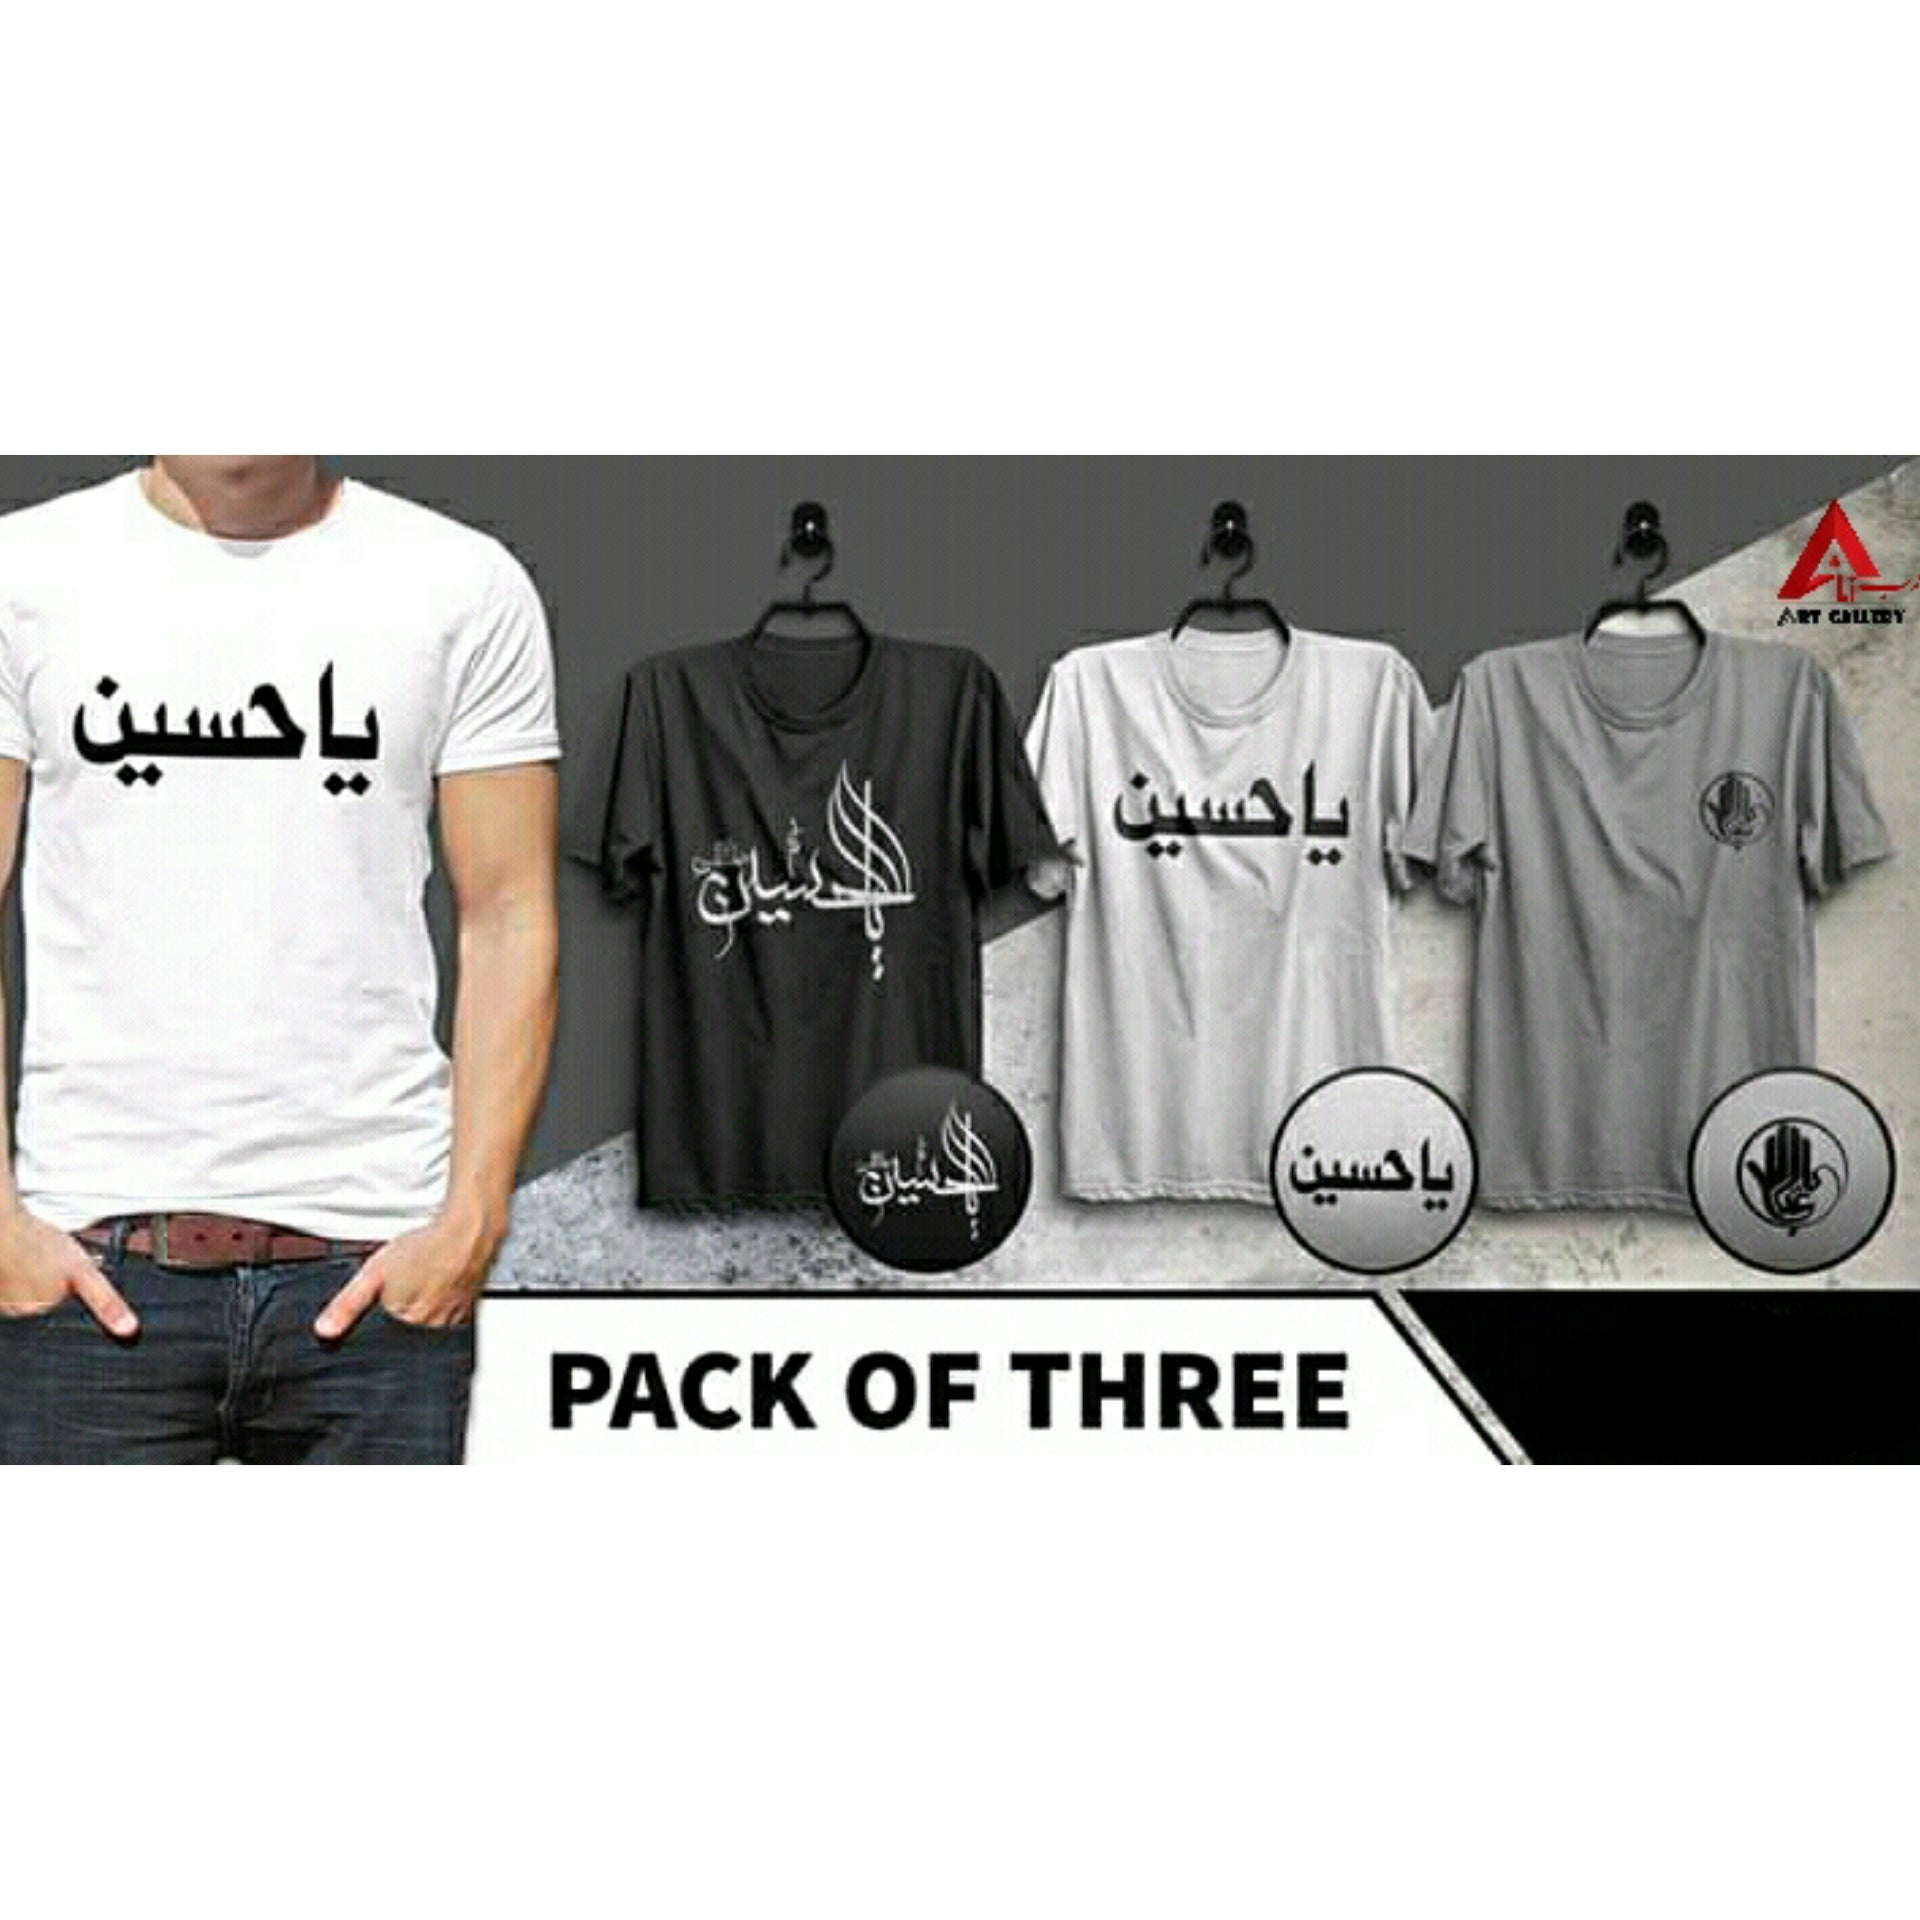 Ya Hussain slwt Shirts Pack Of Three